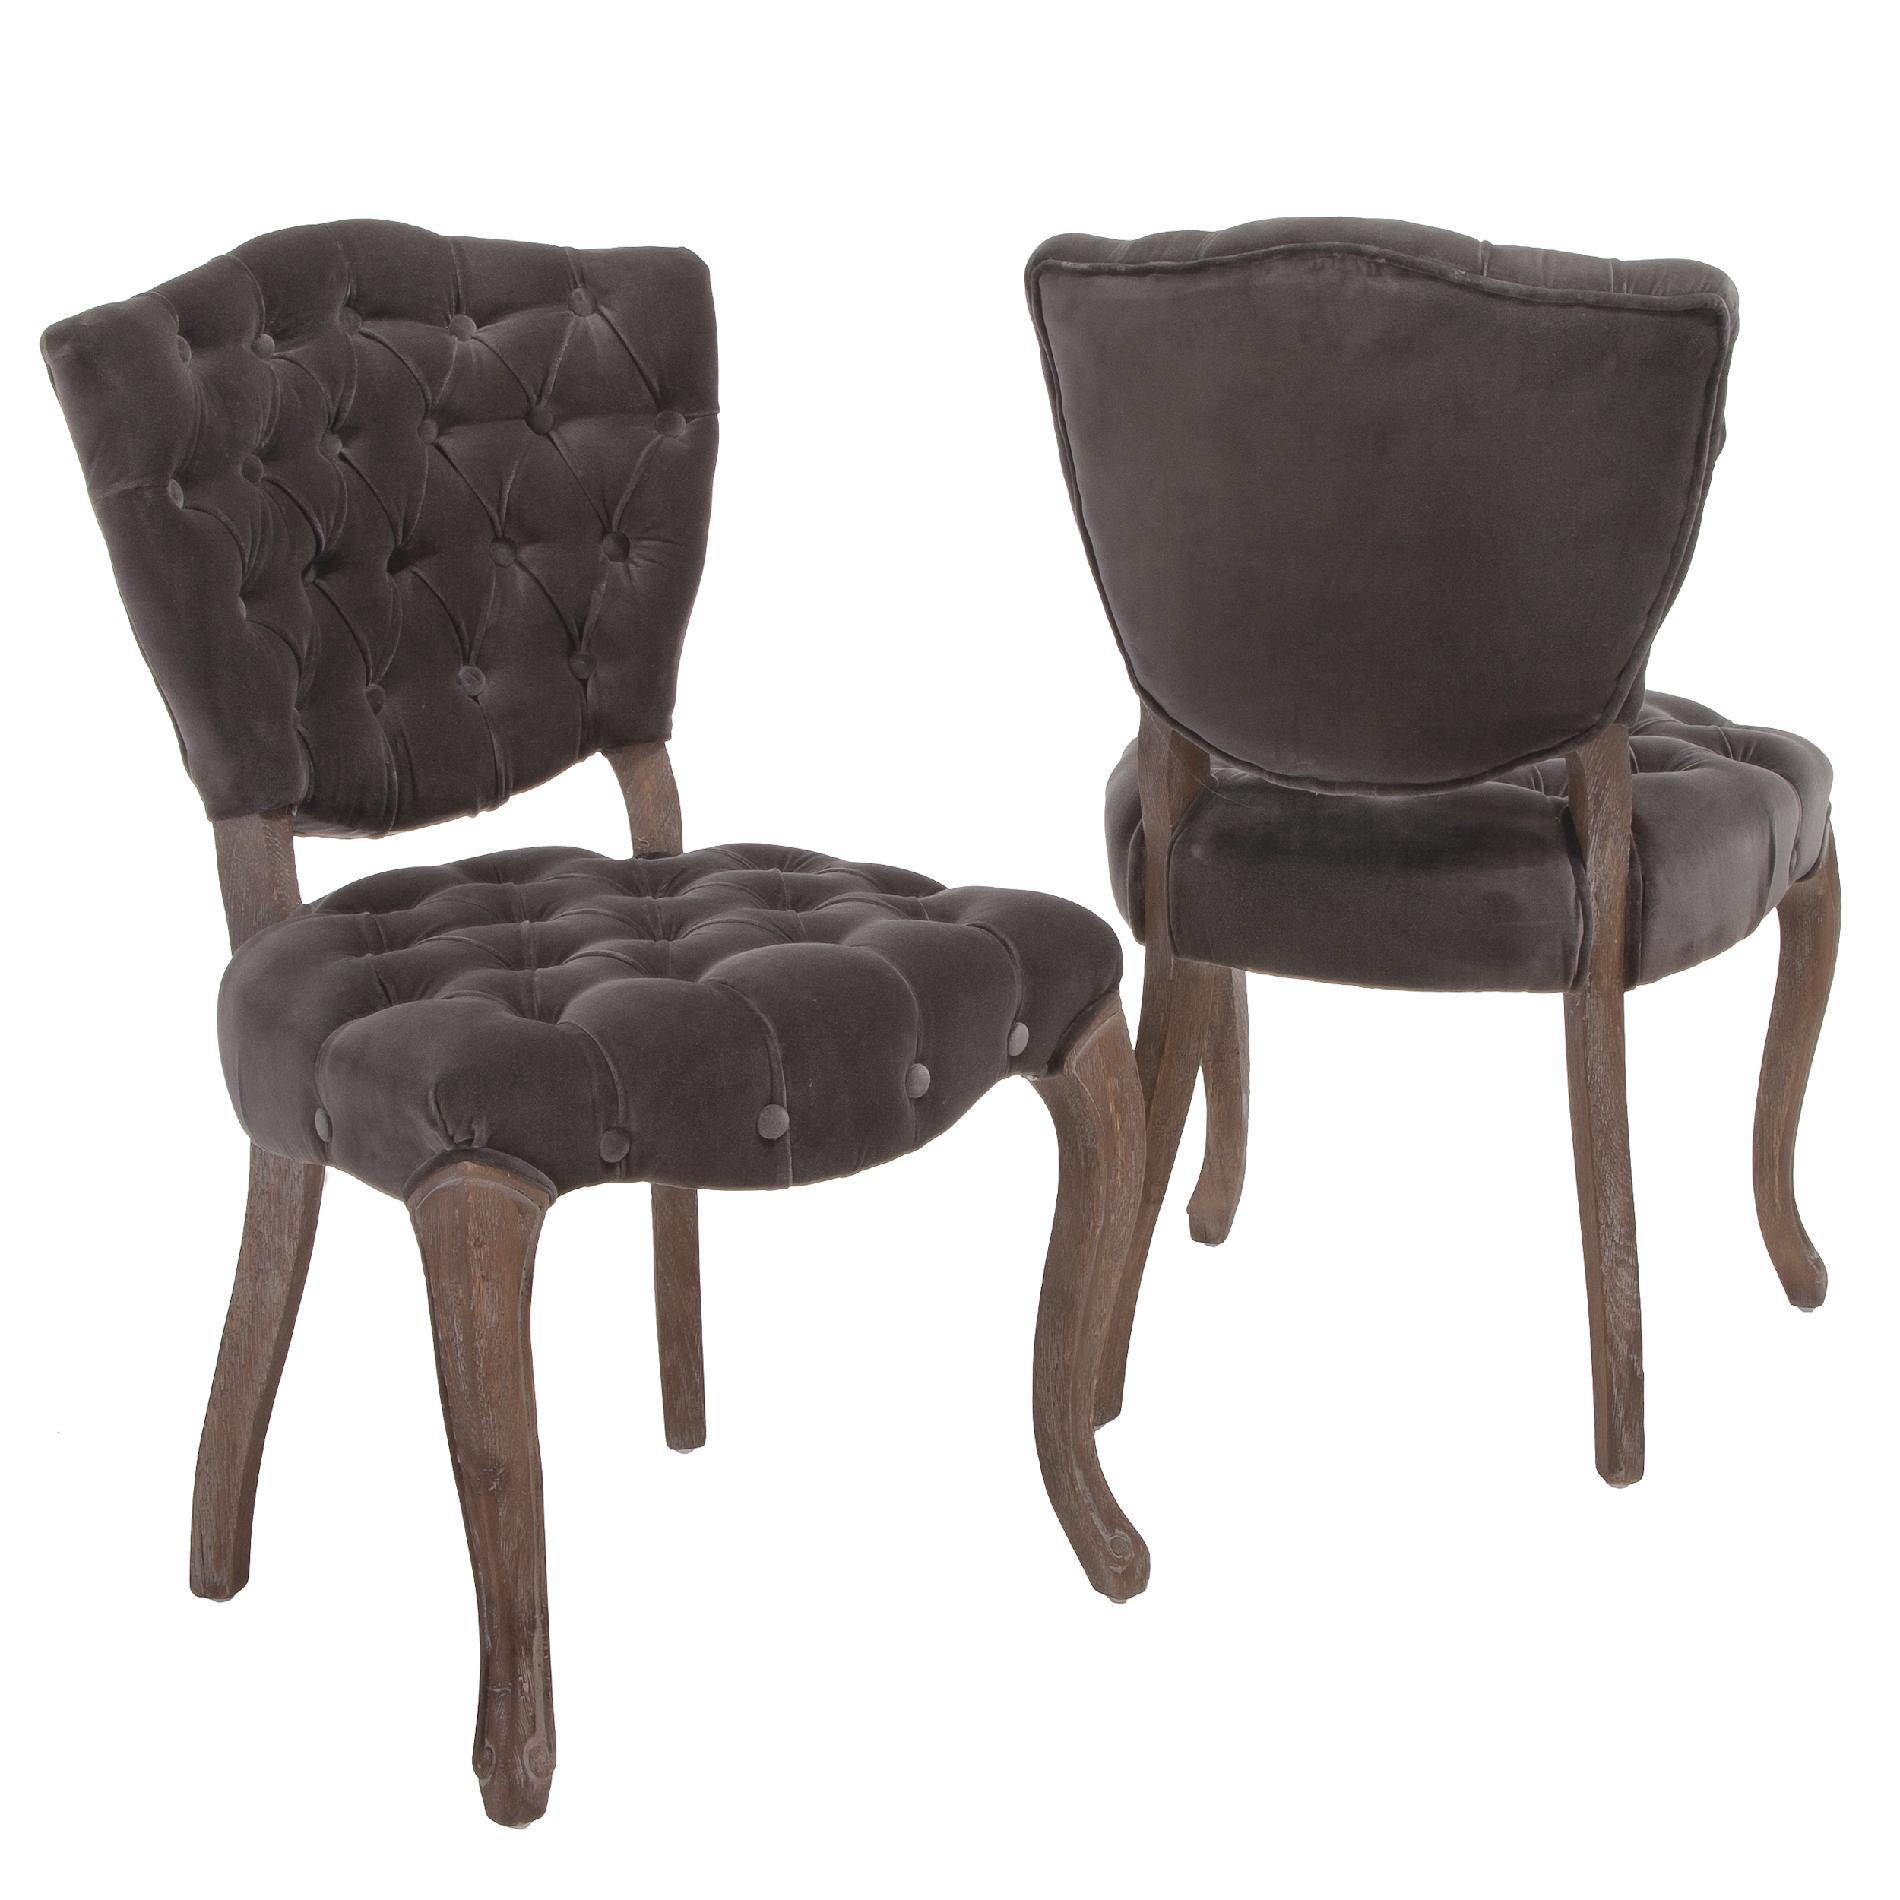 Colorful Dining Chairs   Tufted Dining Chair   Tufted Seat